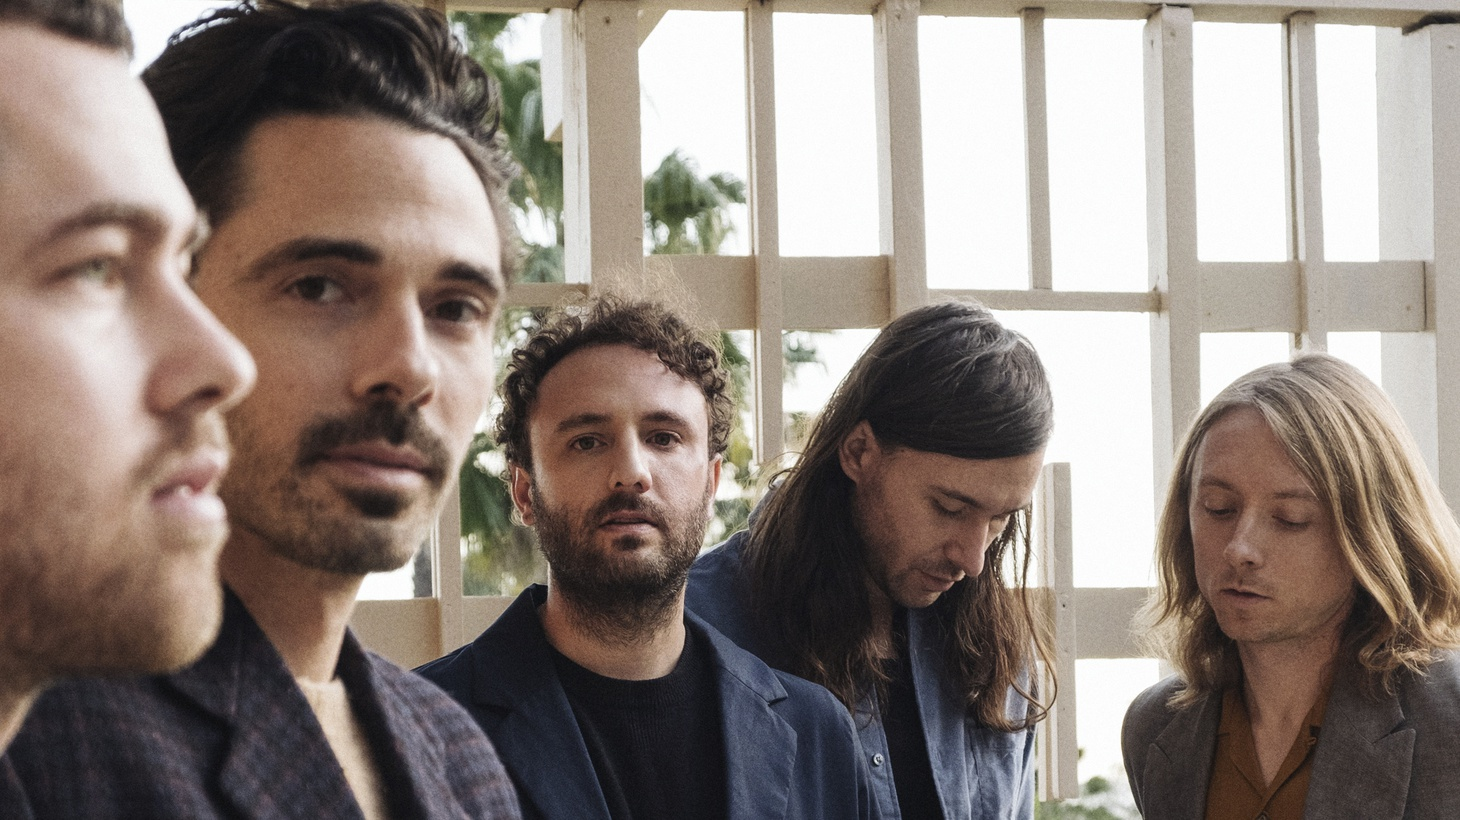 """Homegrown in Los Angeles, Local Natives have been on our radar since their debut album """"Gorilla Manor"""" in 2010. Now, nine years later, they've released Violet Street their ode to the spirit of LA."""